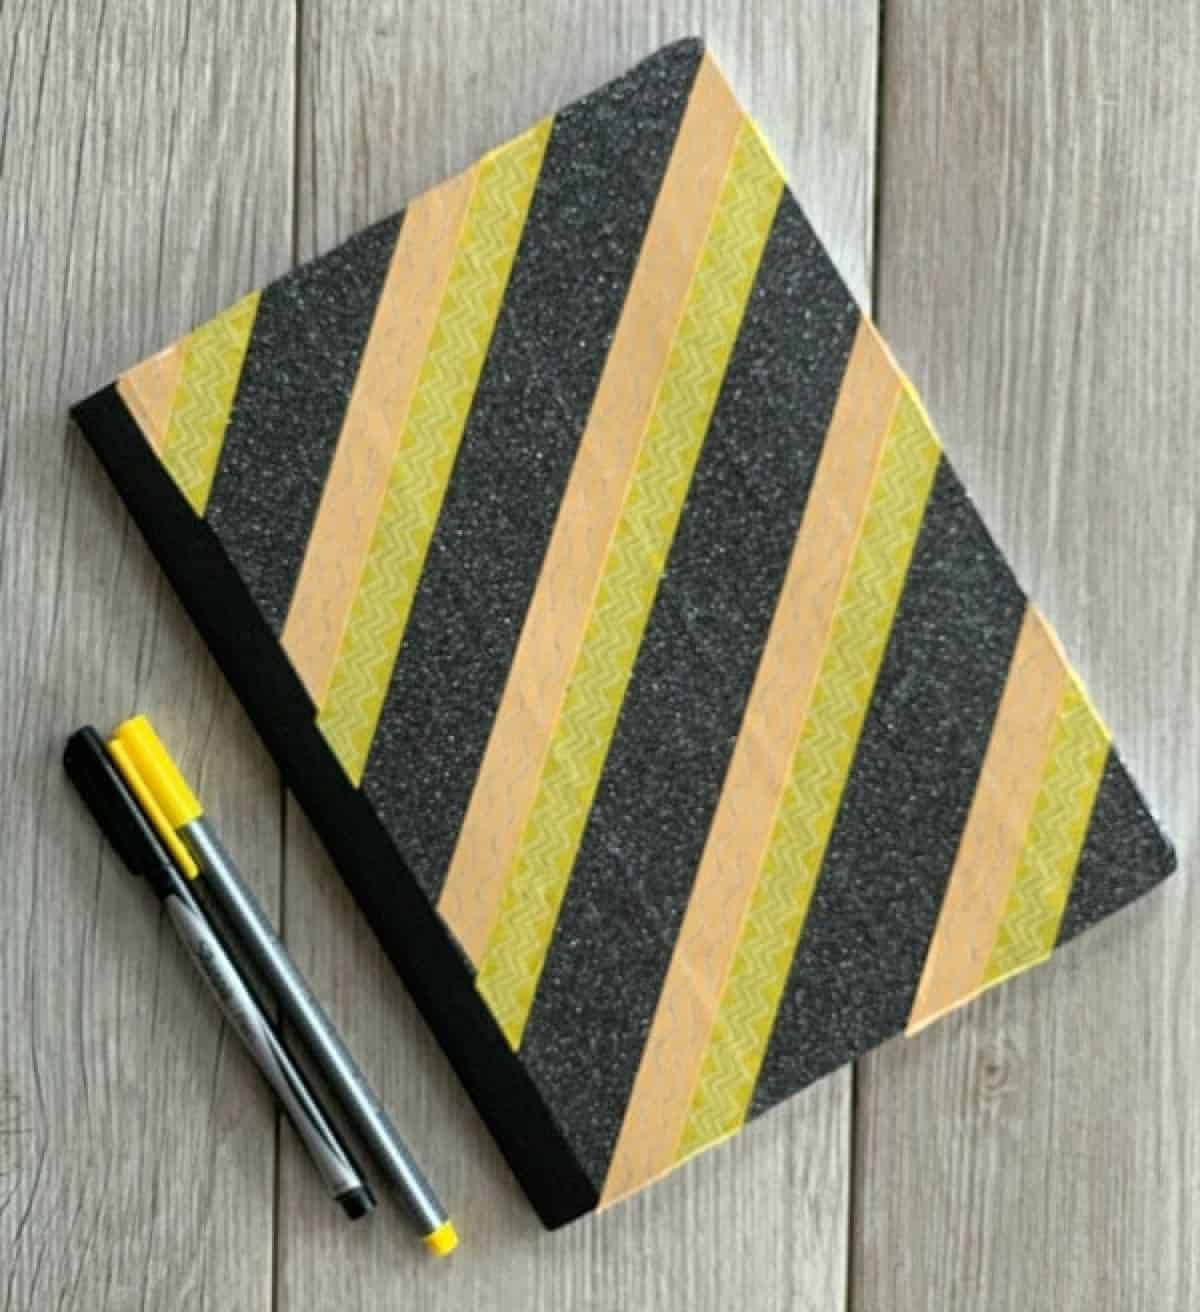 Notebook covered in washi tape.